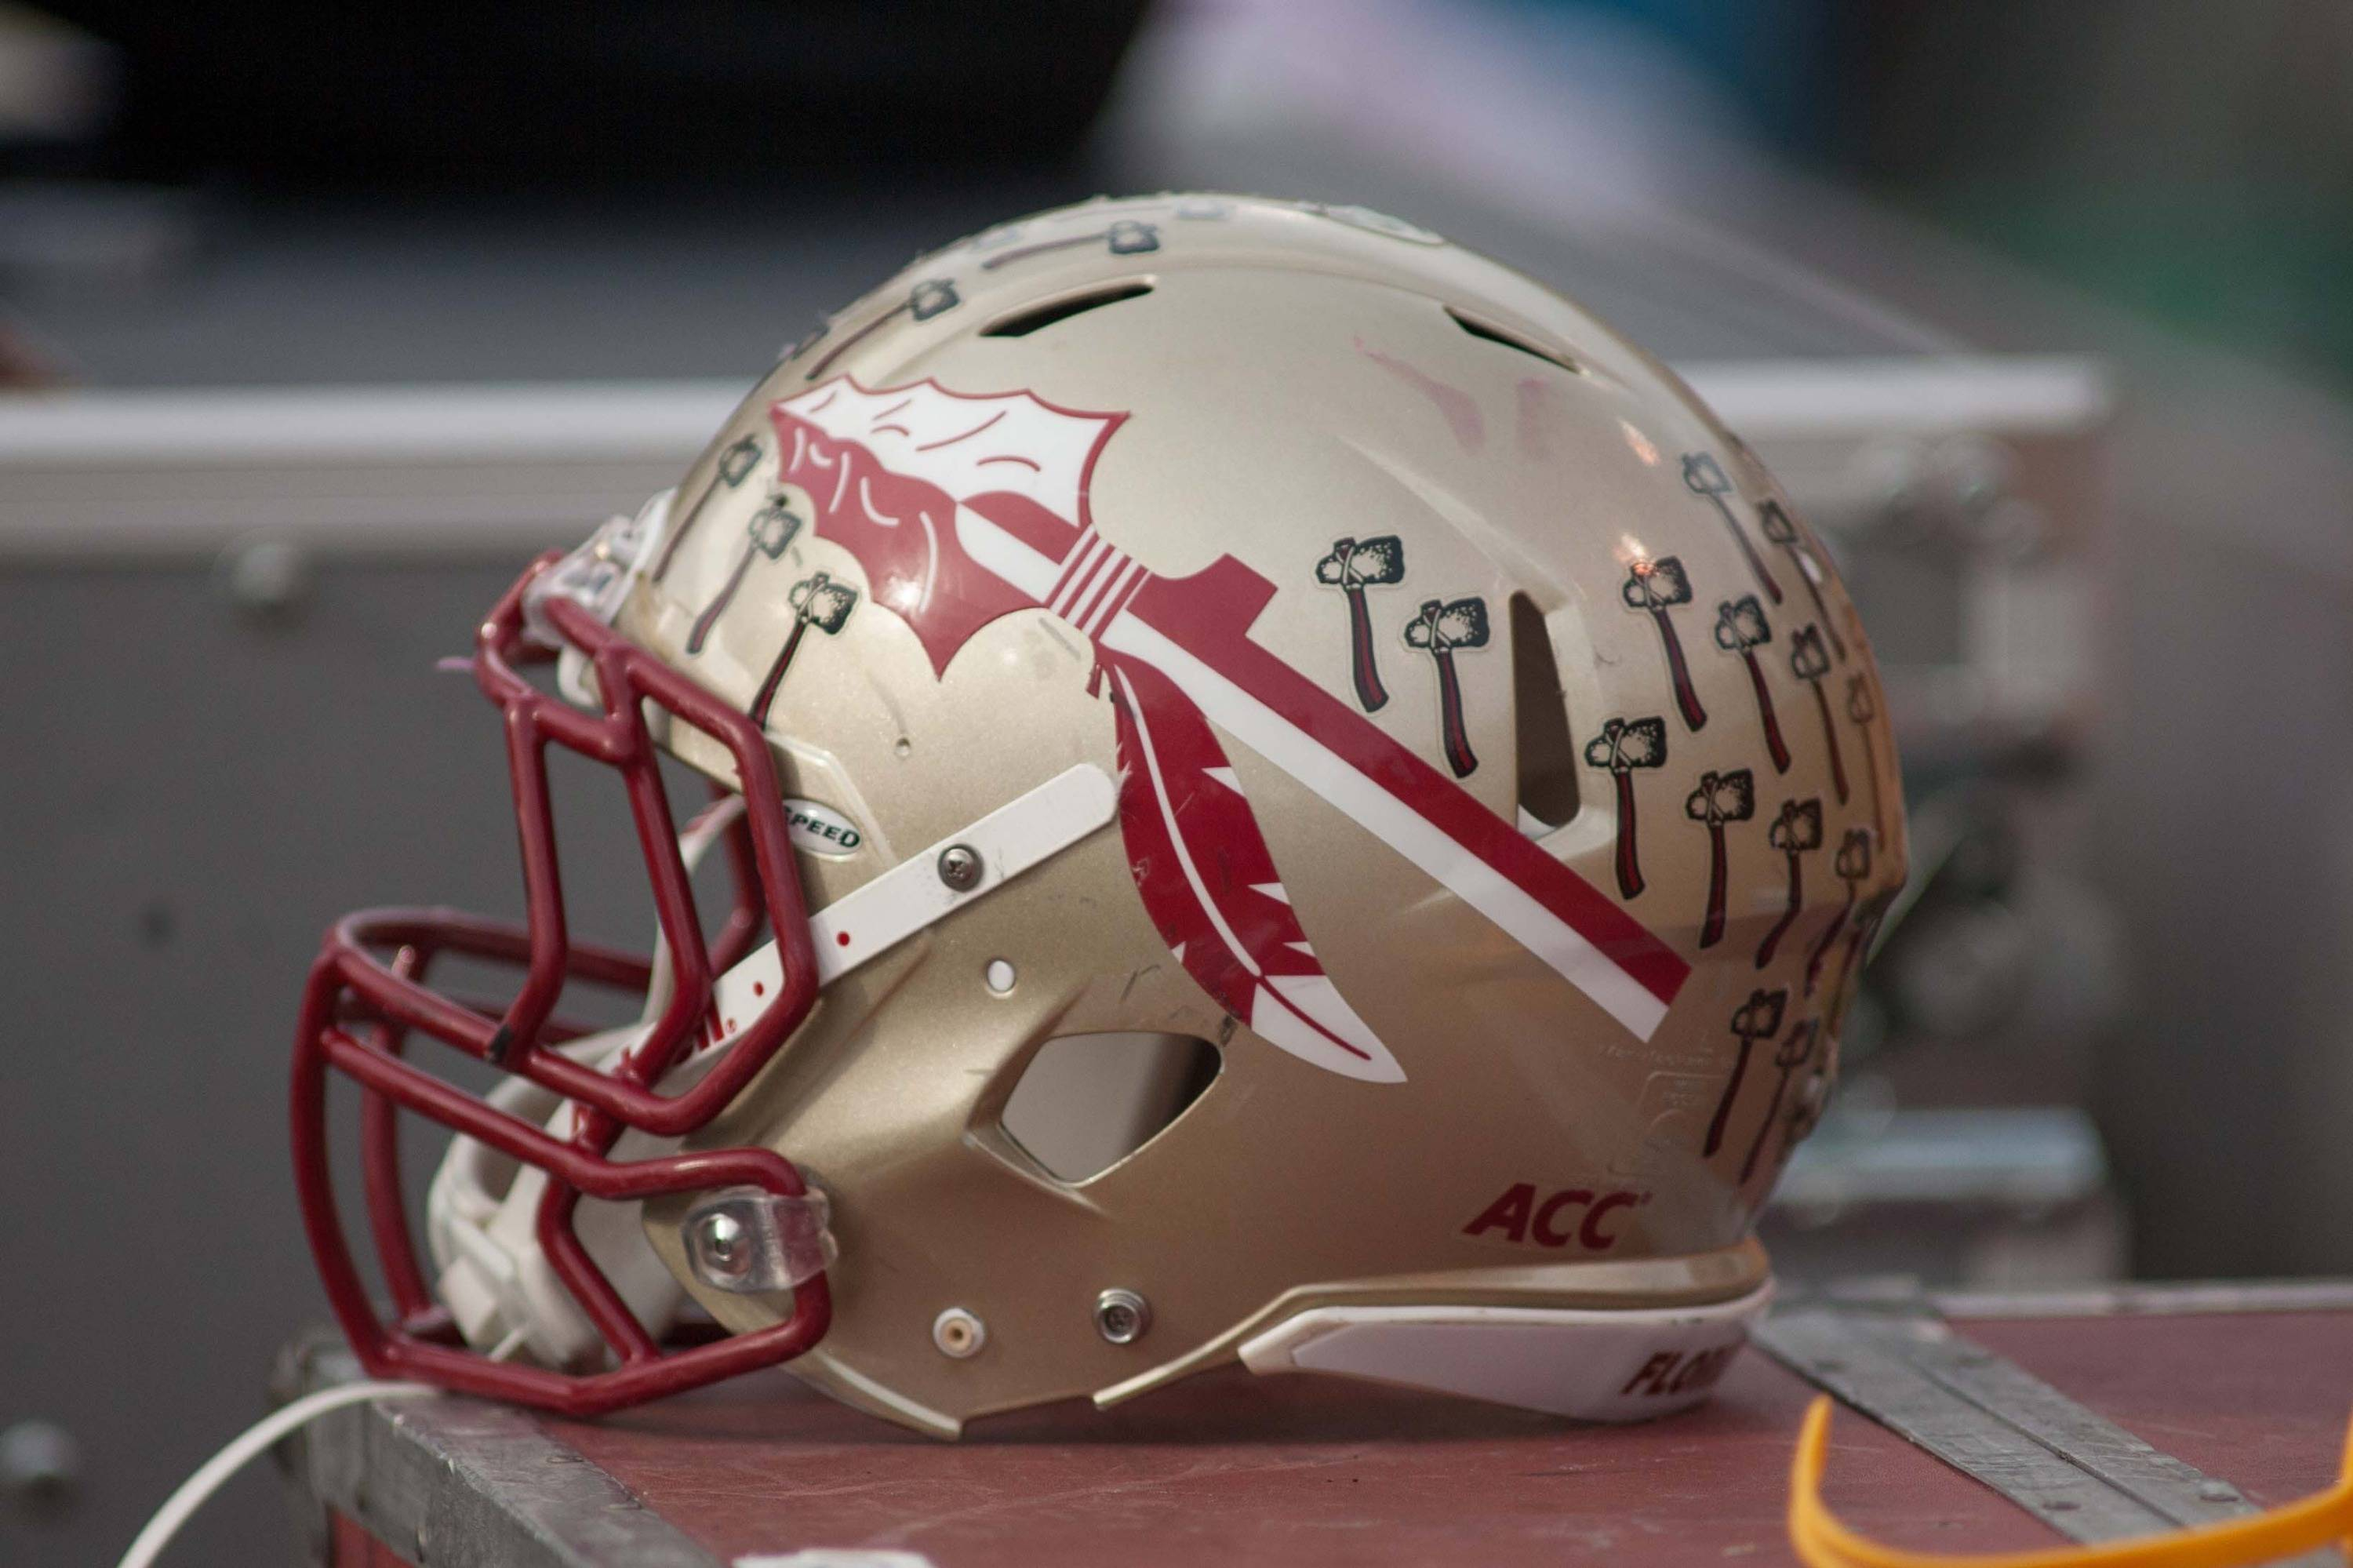 A Florida State Seminoles helmet lays on the sidelines during the game. Mandatory Credit: Jeremy Brevard-USA TODAY Sports